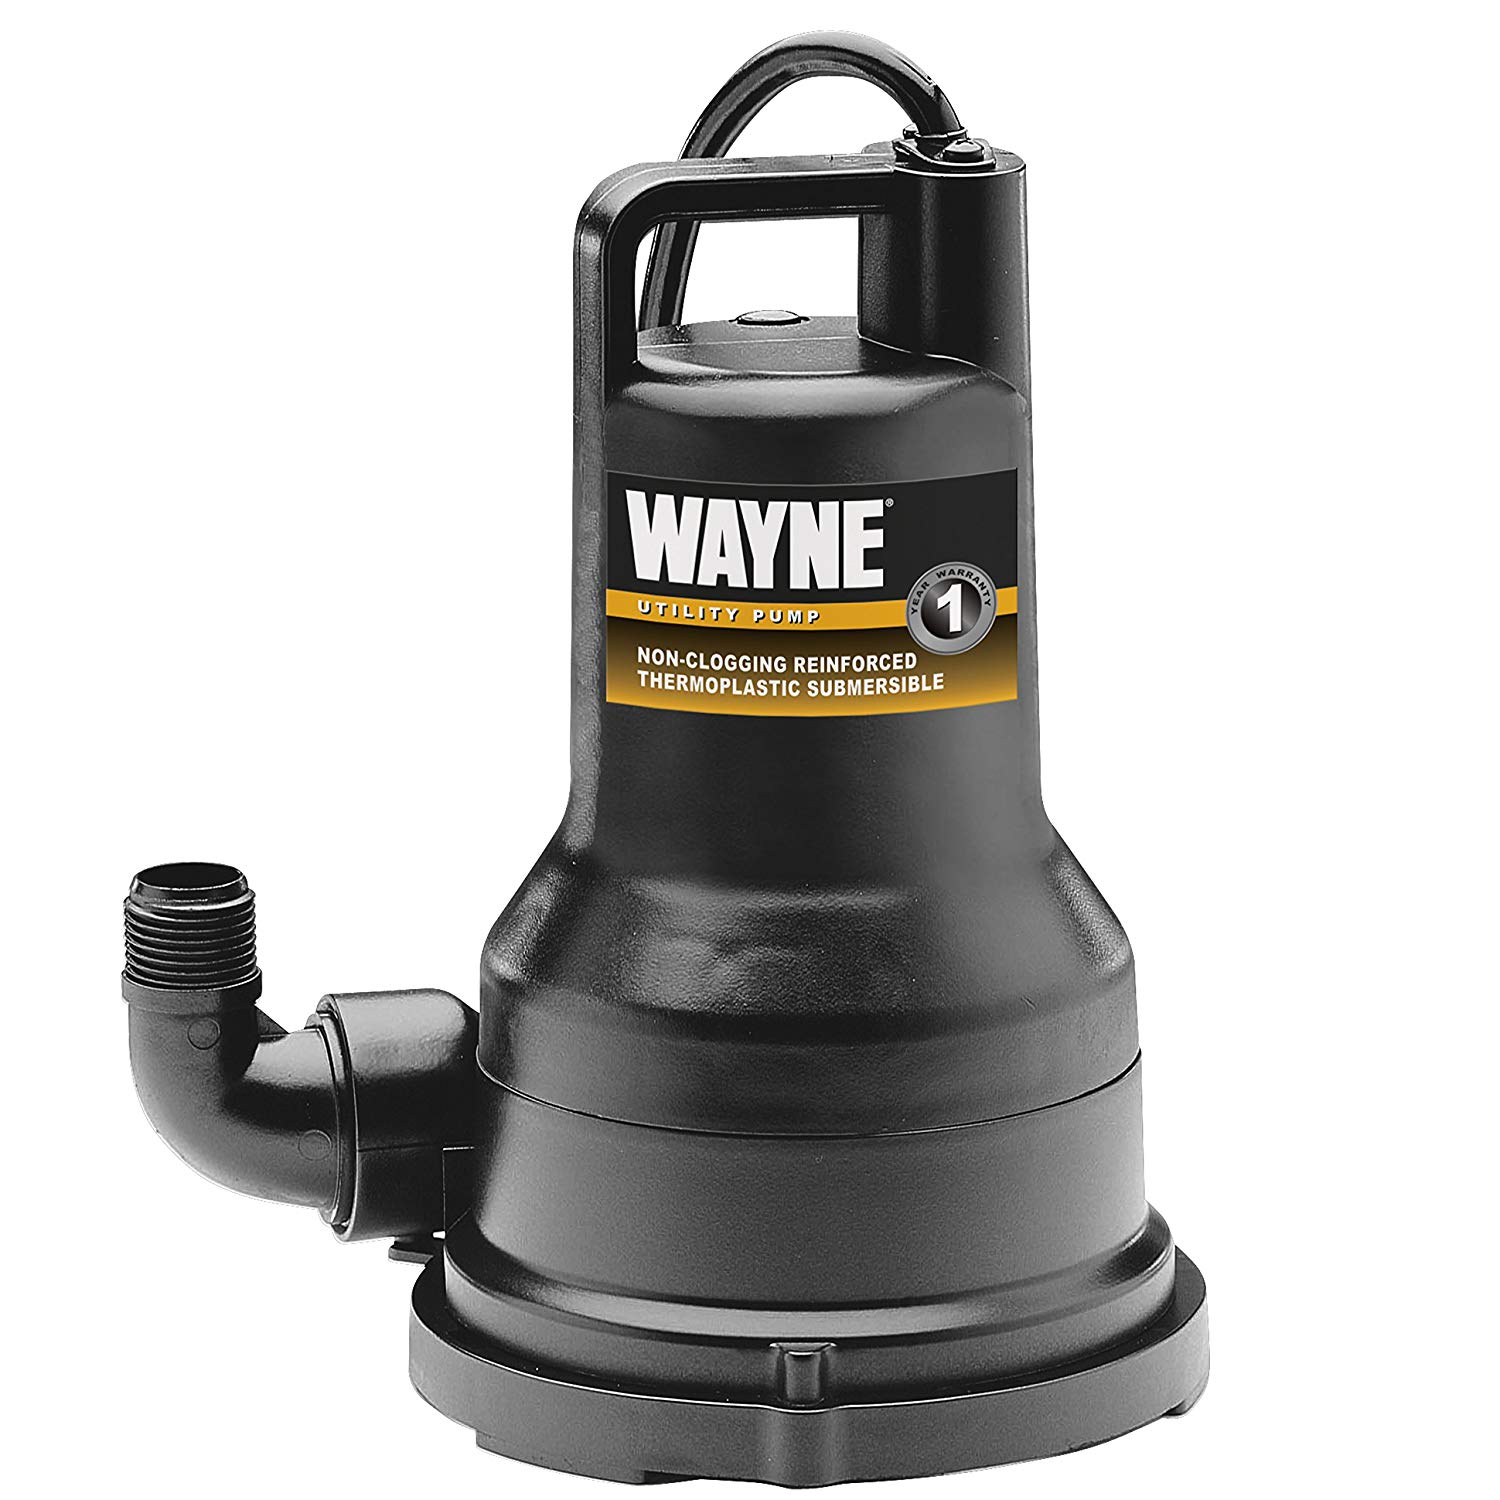 Wayne VIP50 1/2HP Thermoplastic Portable Electric Water Removal Pump